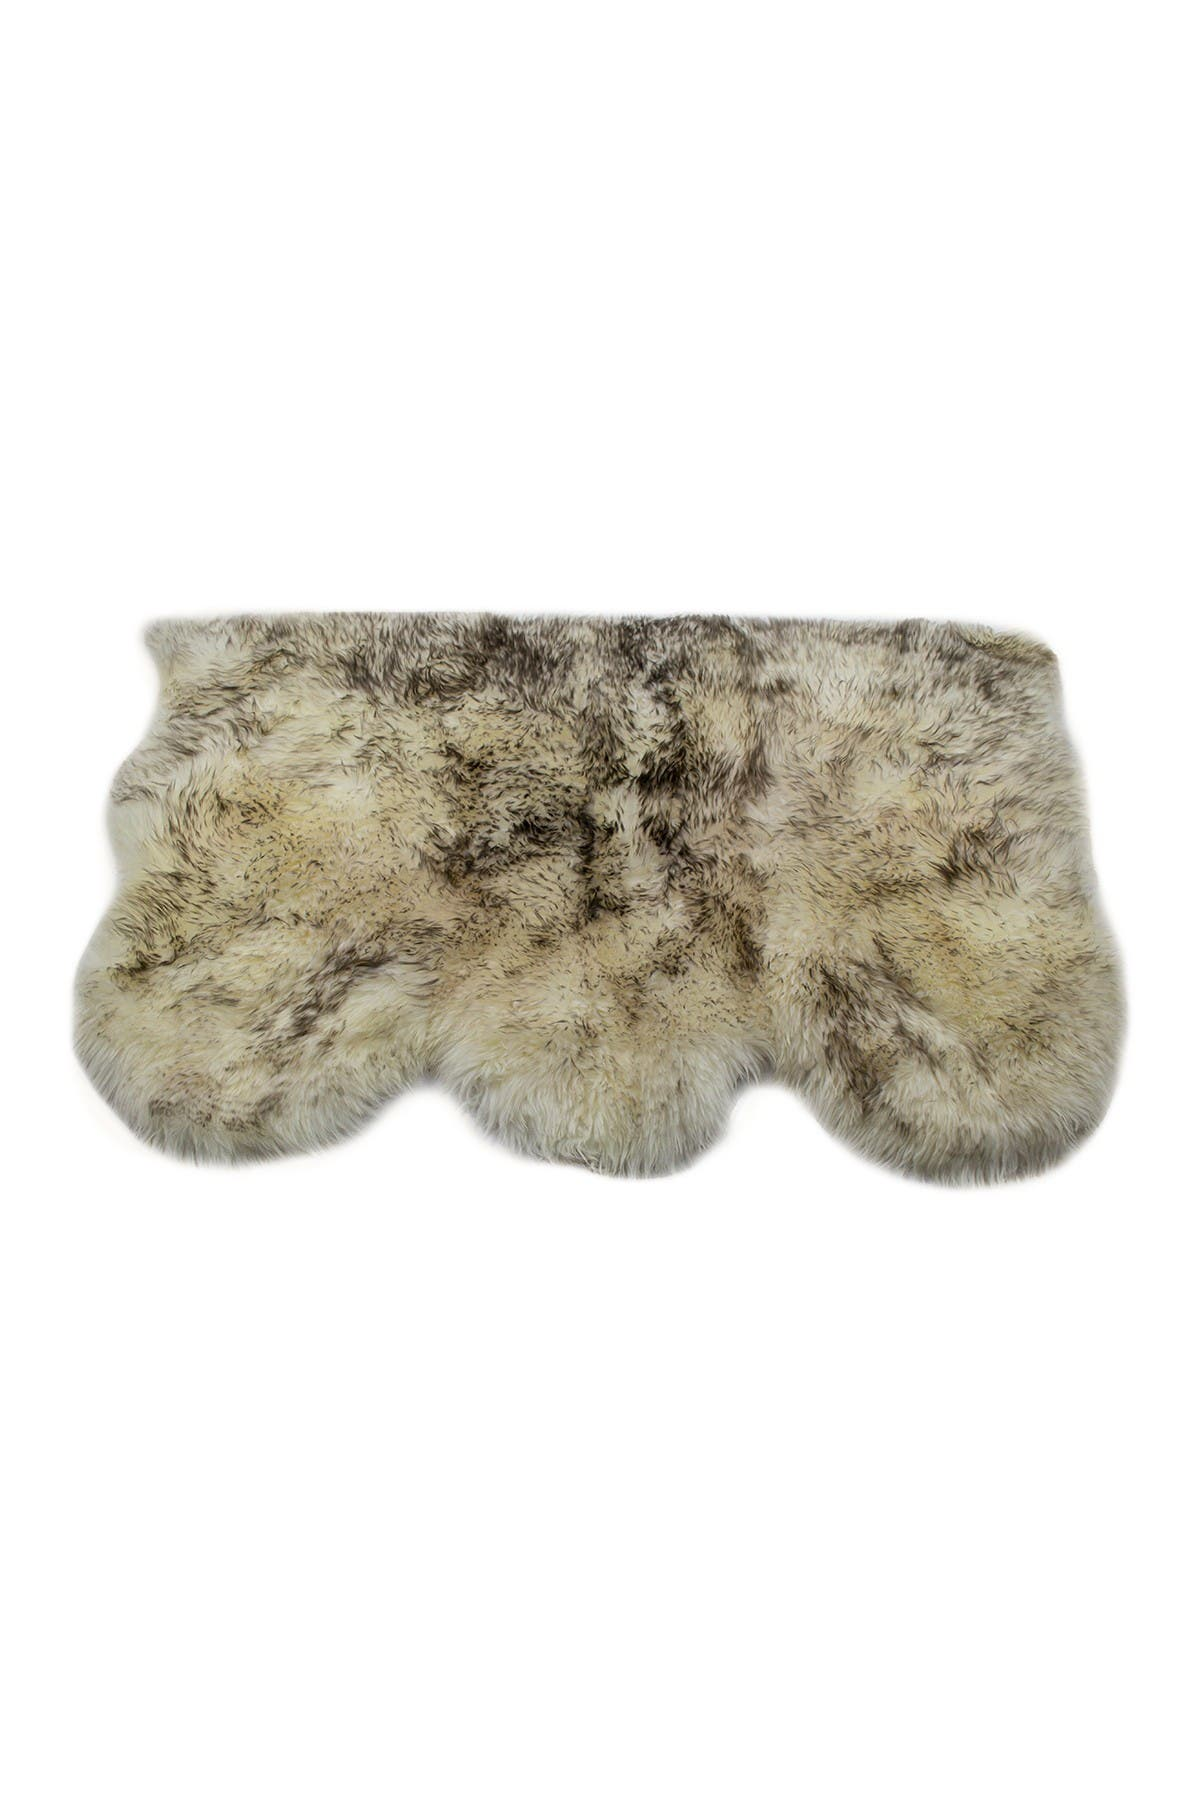 Image of Natural New Zealand Triple Sheepskin Throw - 3ft X 5ft - Gradient Chocolate